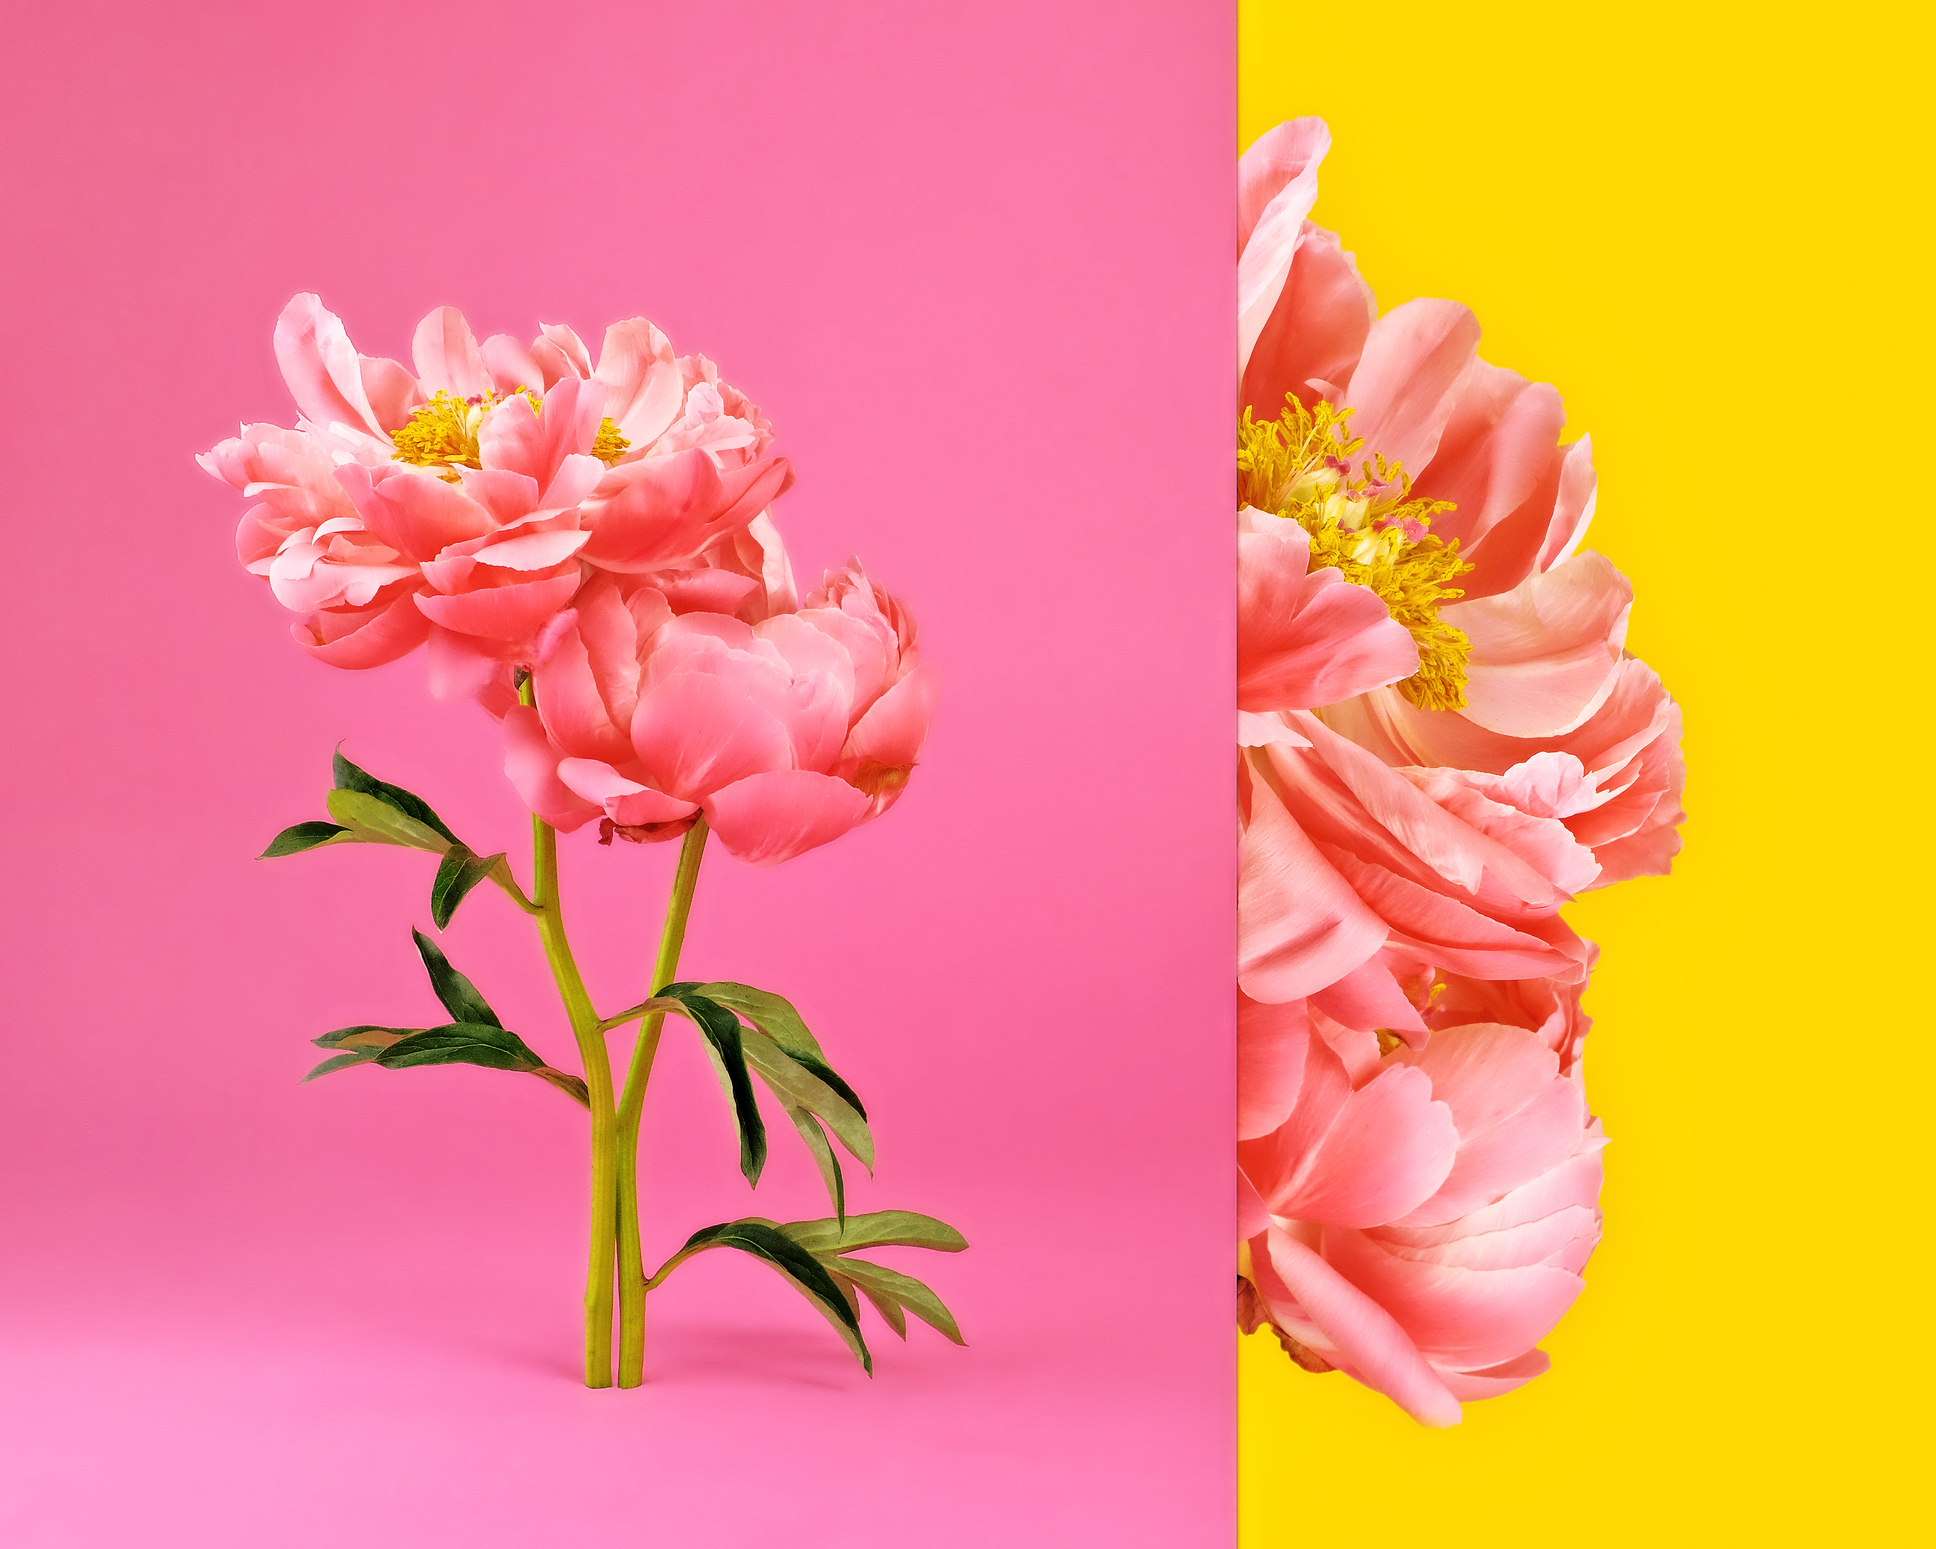 Side by side composite image of pink peonies in bloom with pink and yellow background.